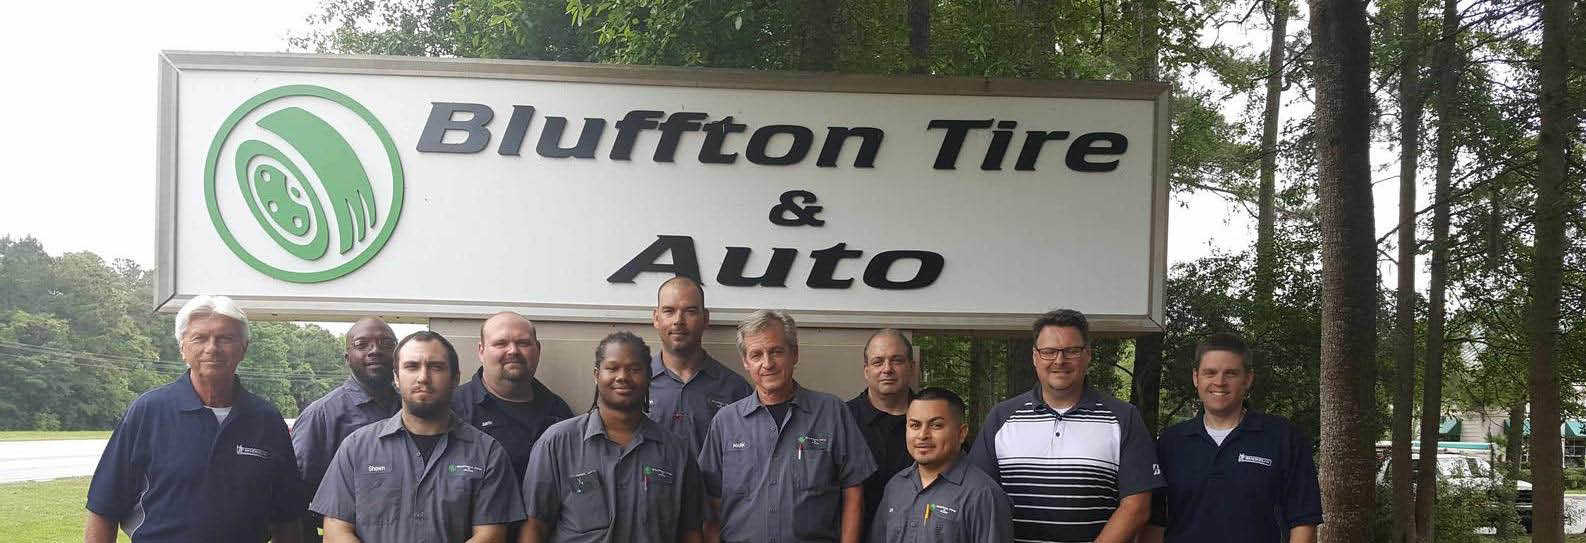 Bluffton Tire & Auto Repair in Bluffton, SC Banner ad